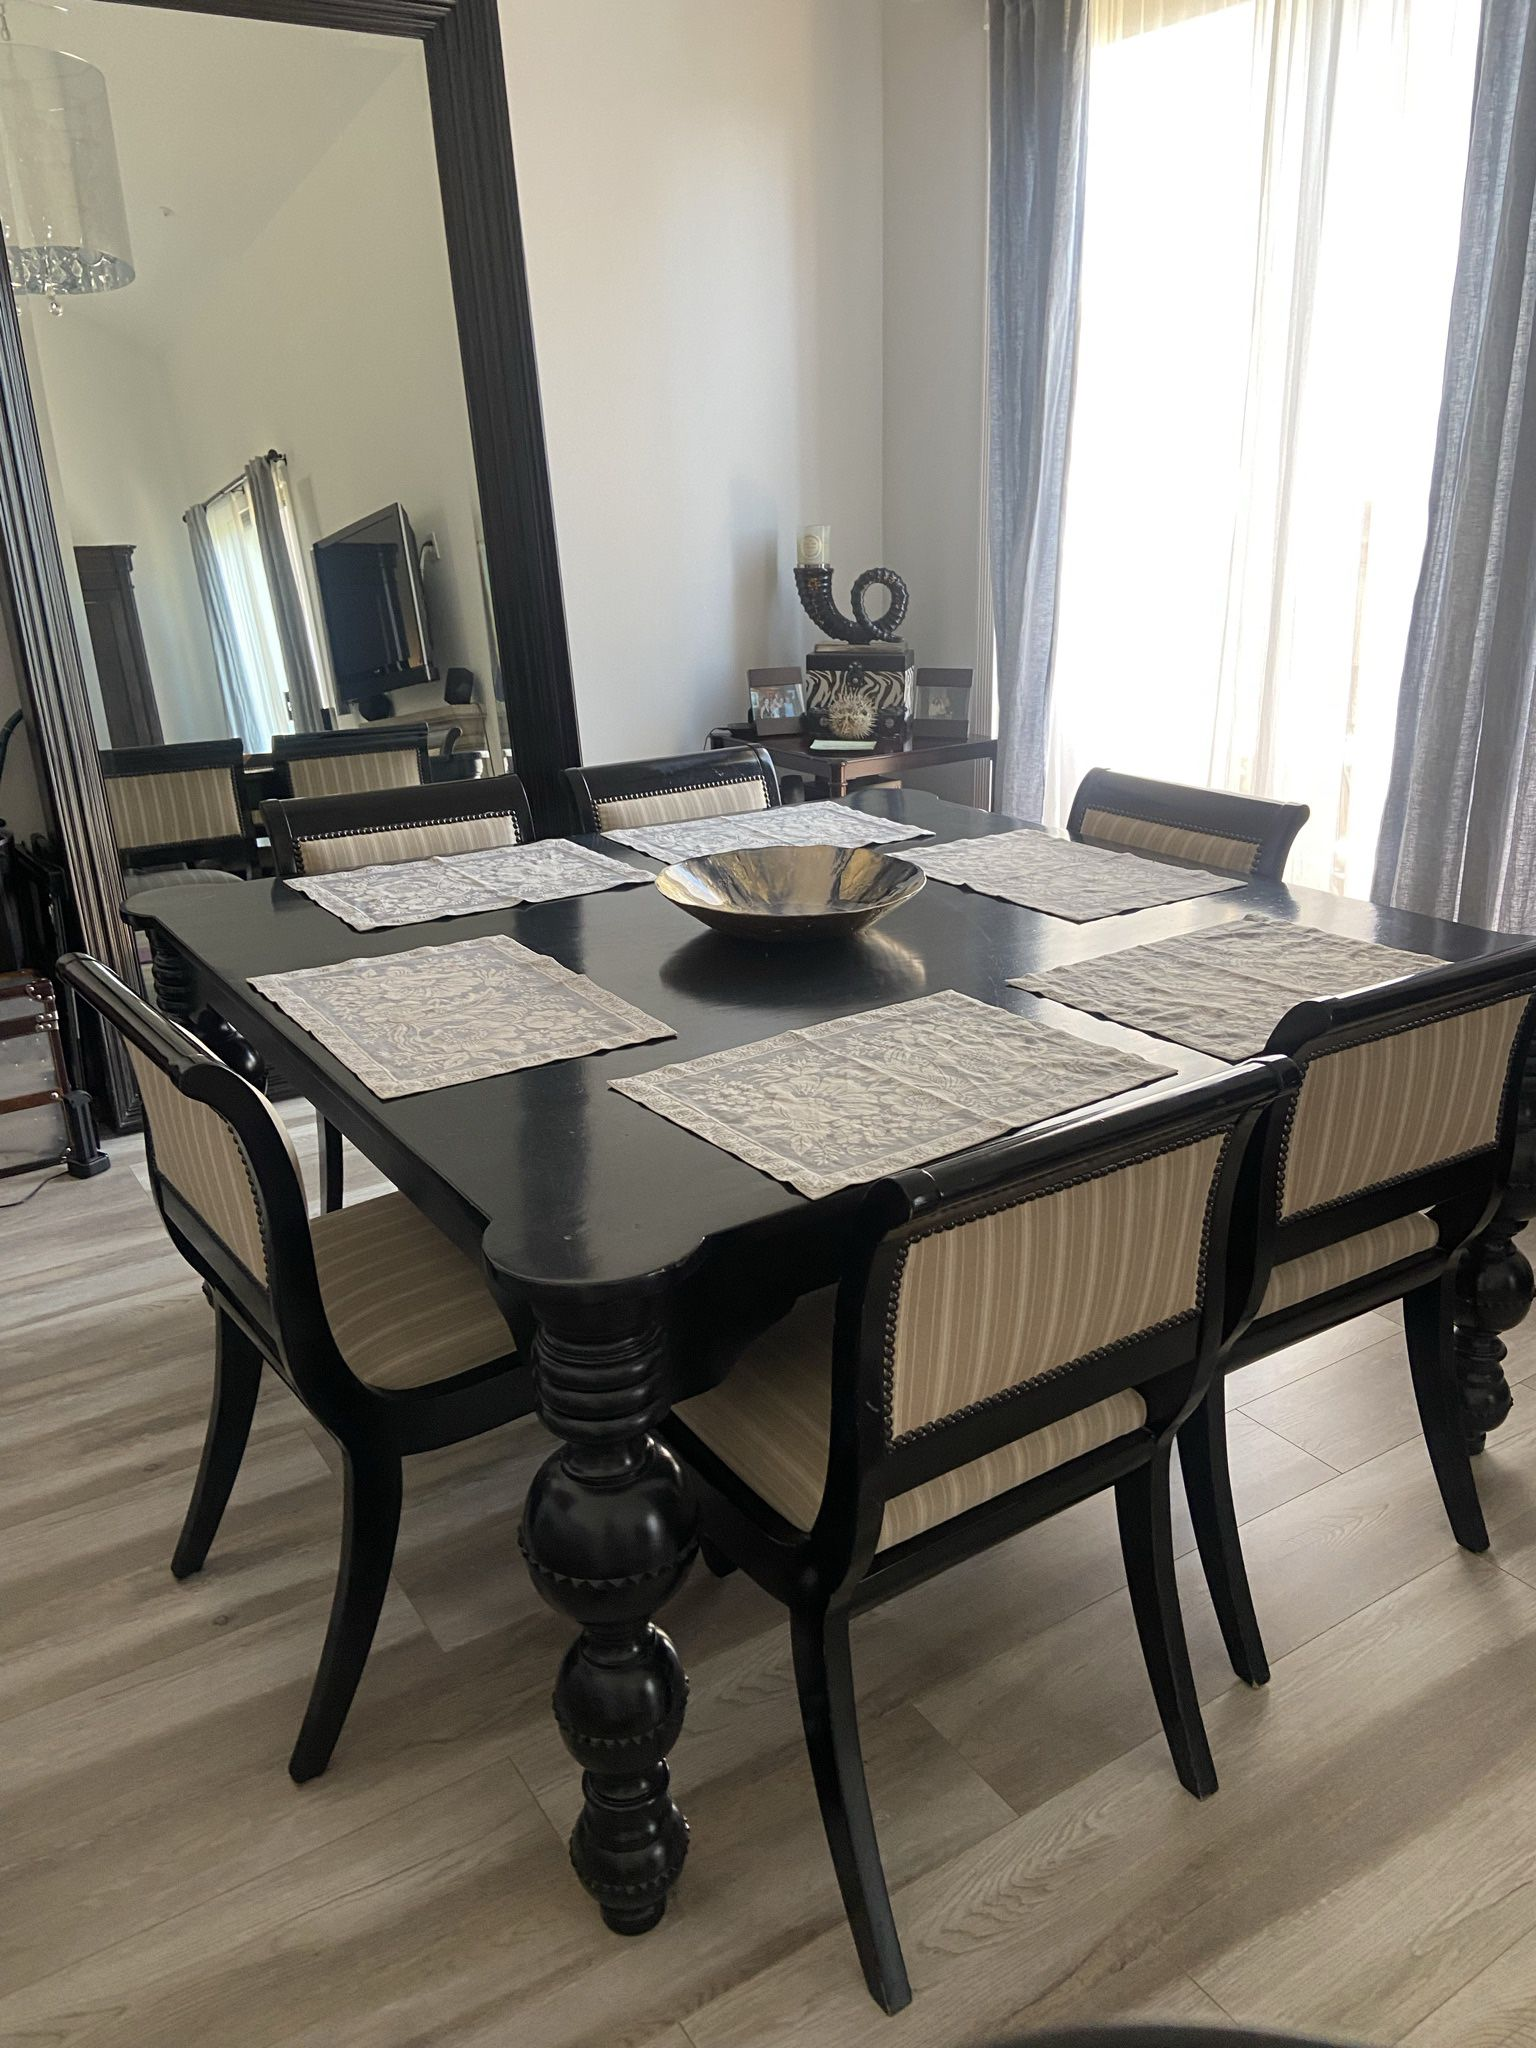 Moving Dining Room Table Only, Dining Room Furniture Los Angeles California